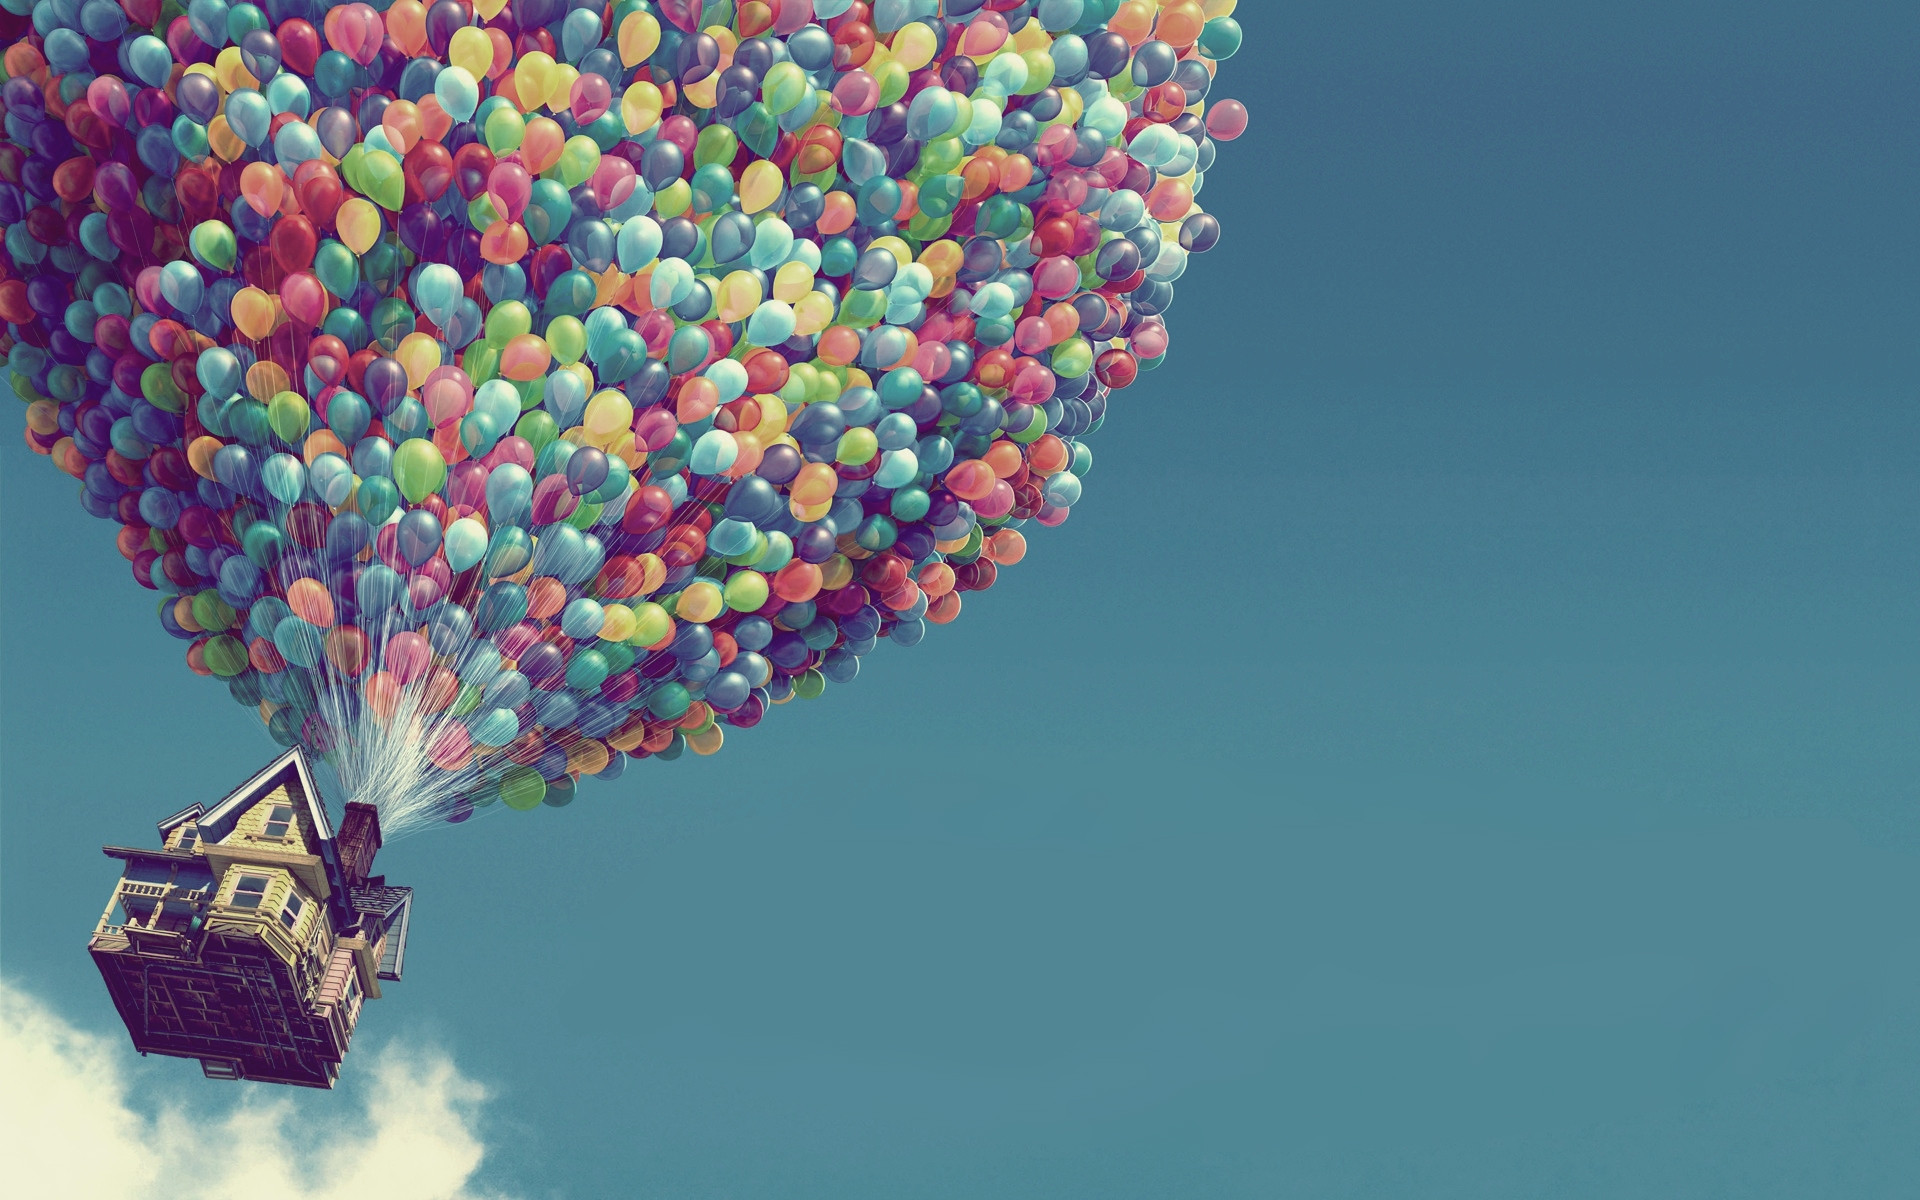 Up free widescreen